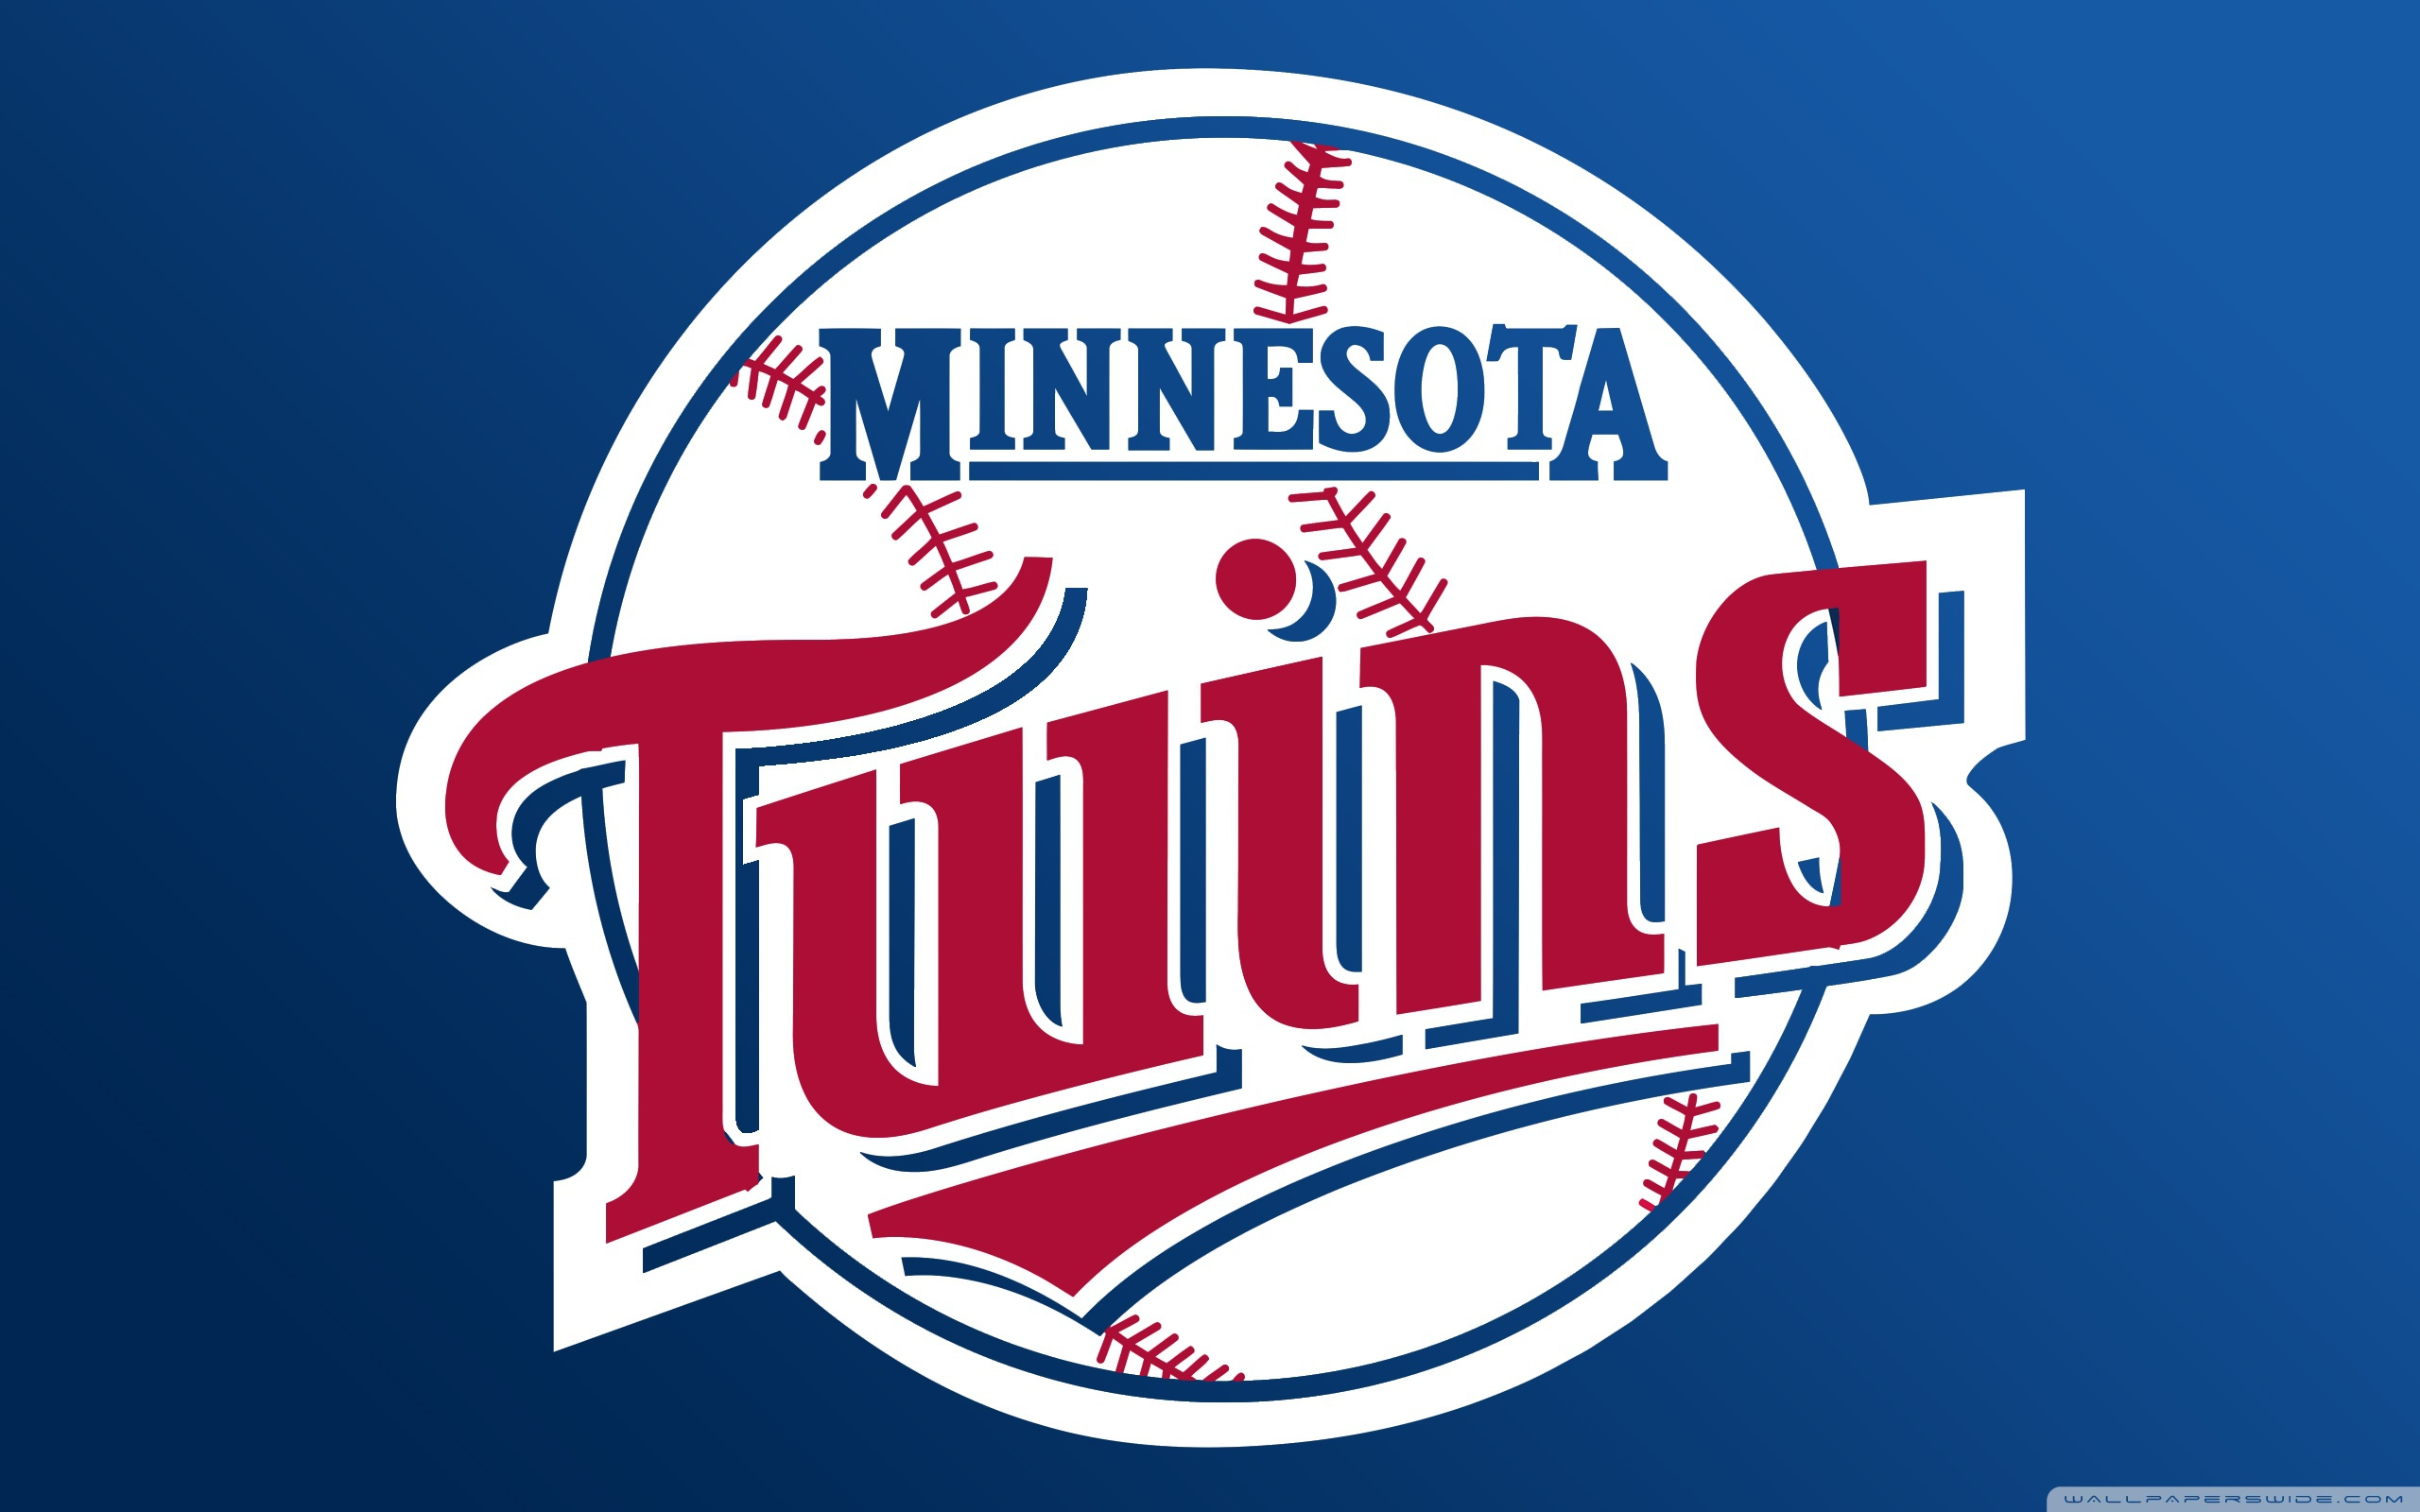 Minnesota Twins logo Club wallpapers and images 2560x1600